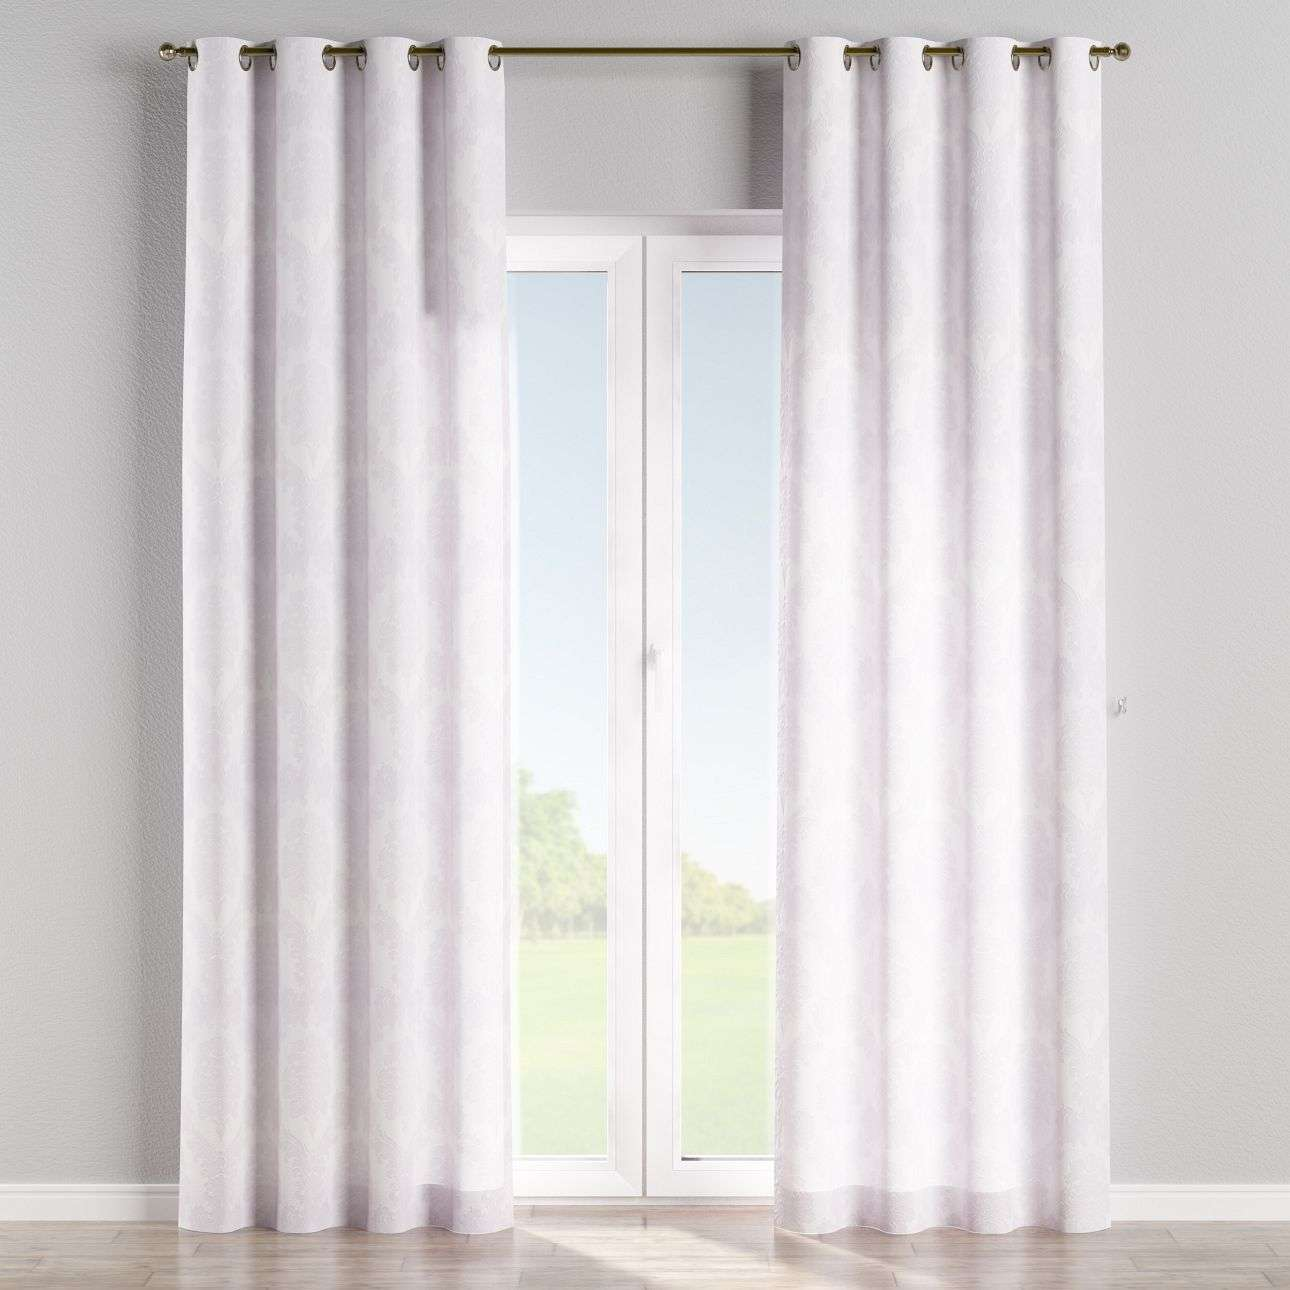 Eyelet curtains 130 x 260 cm (51 x 102 inch) in collection Damasco, fabric: 613-00